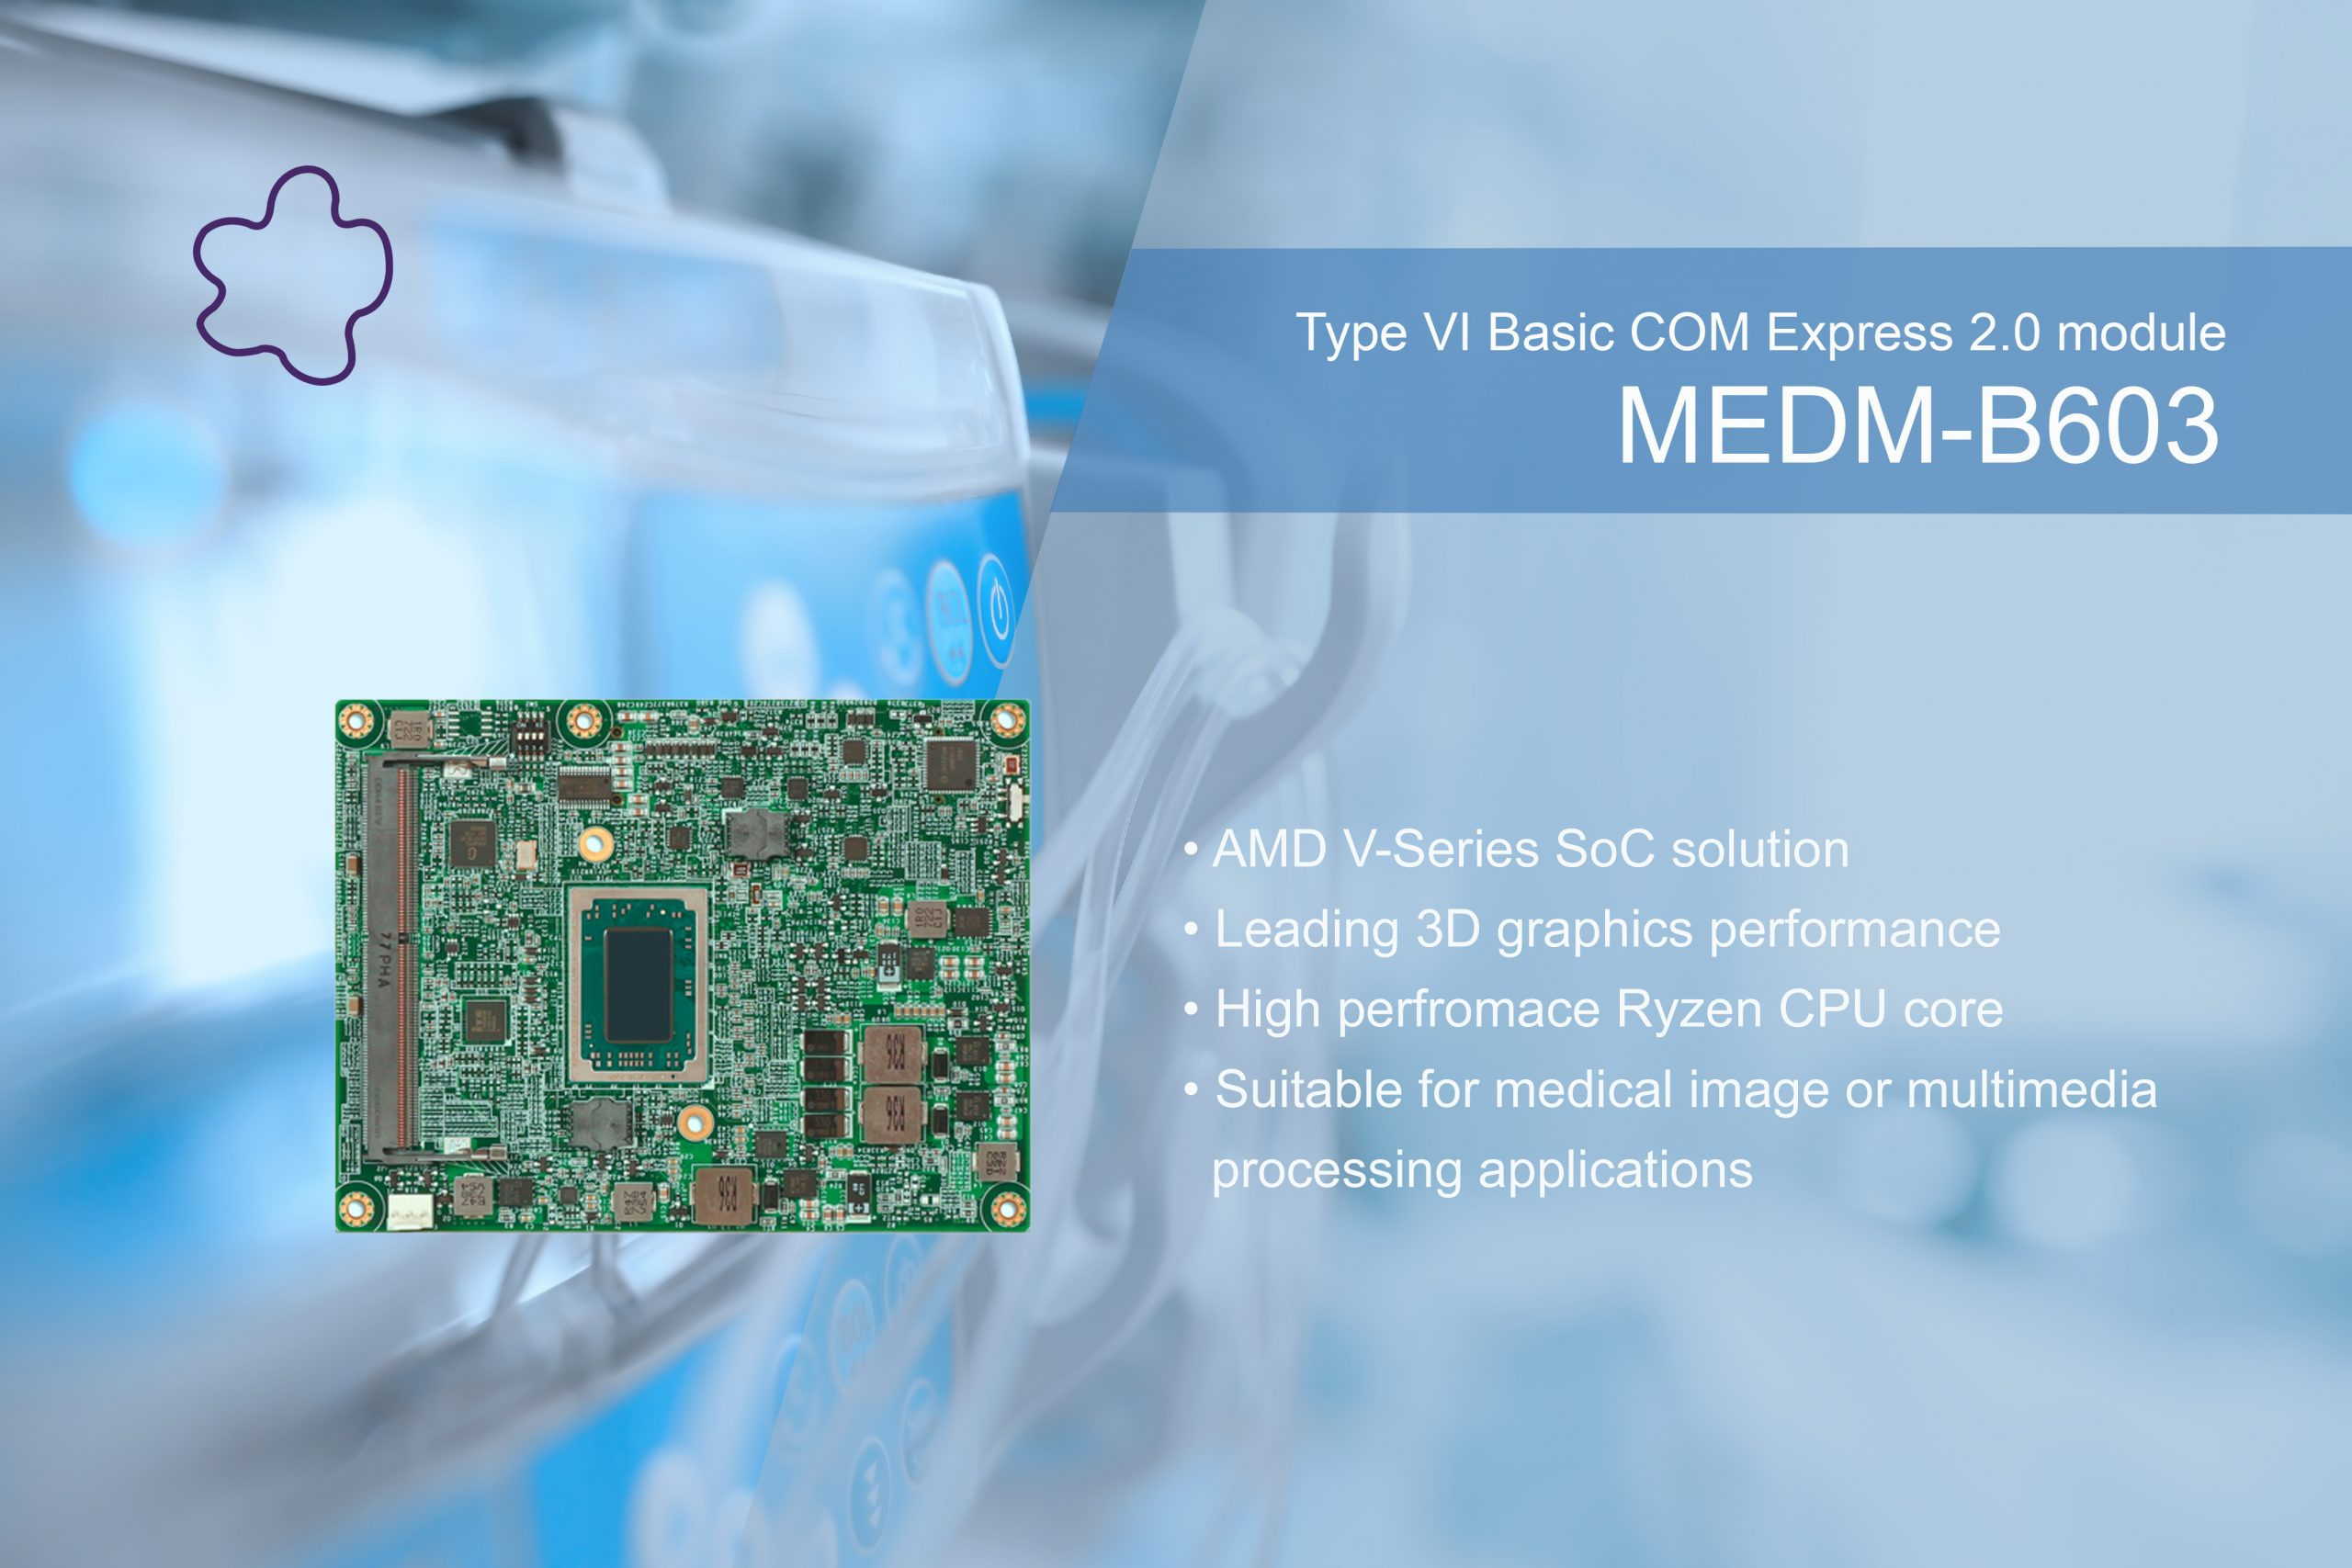 Portwell's New Com Express Type 6 Module Is Compact, Cost-Effective With Accelerated Graphic Processing